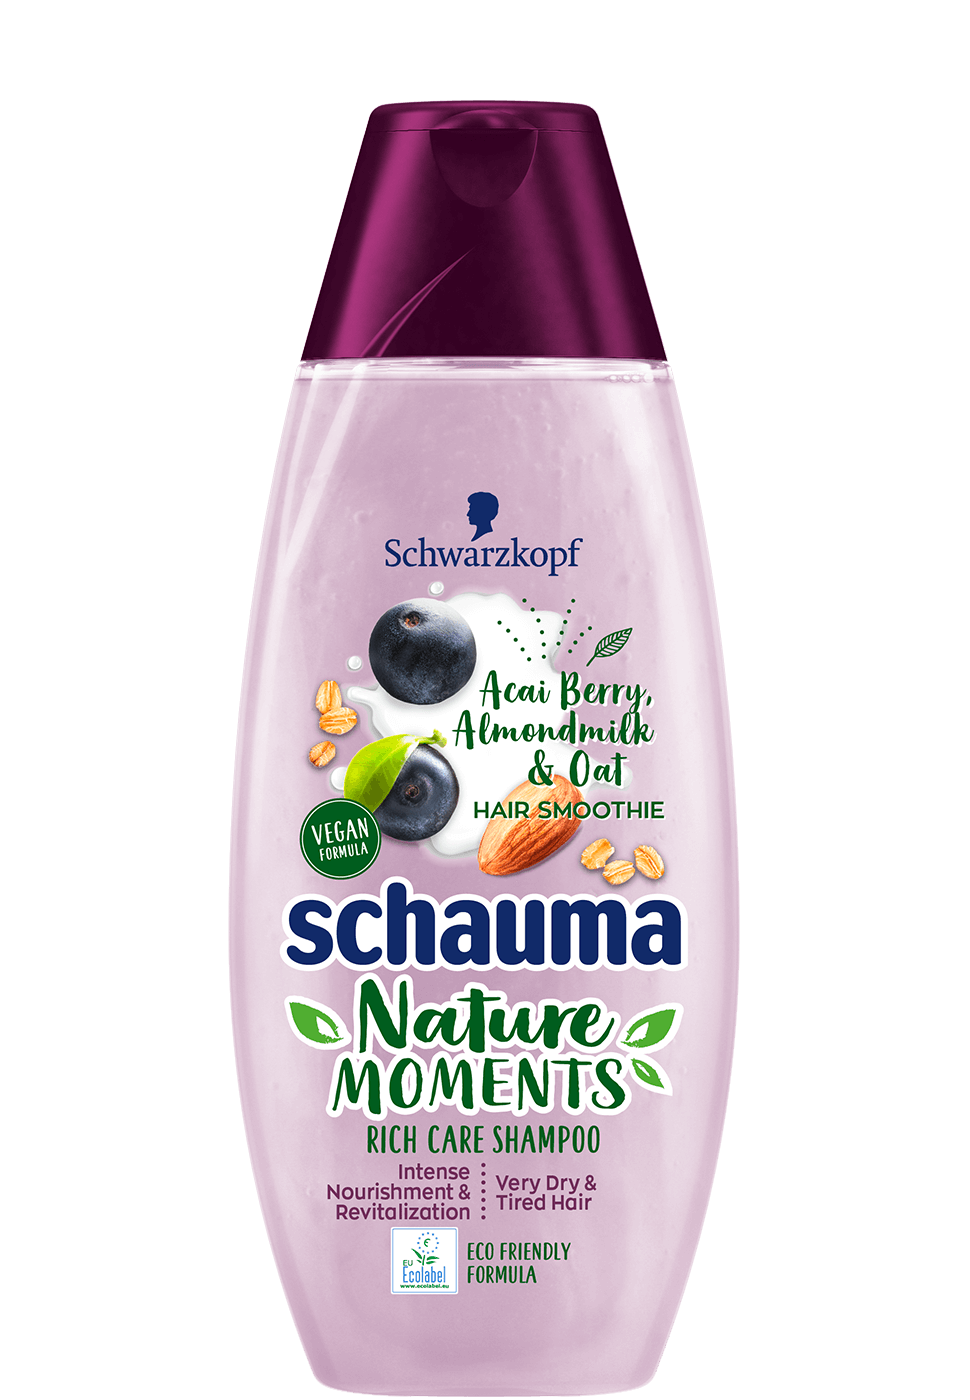 schauma_com_nature_moments_acai_berry_almondmilk_oat_shampoo_970x1400